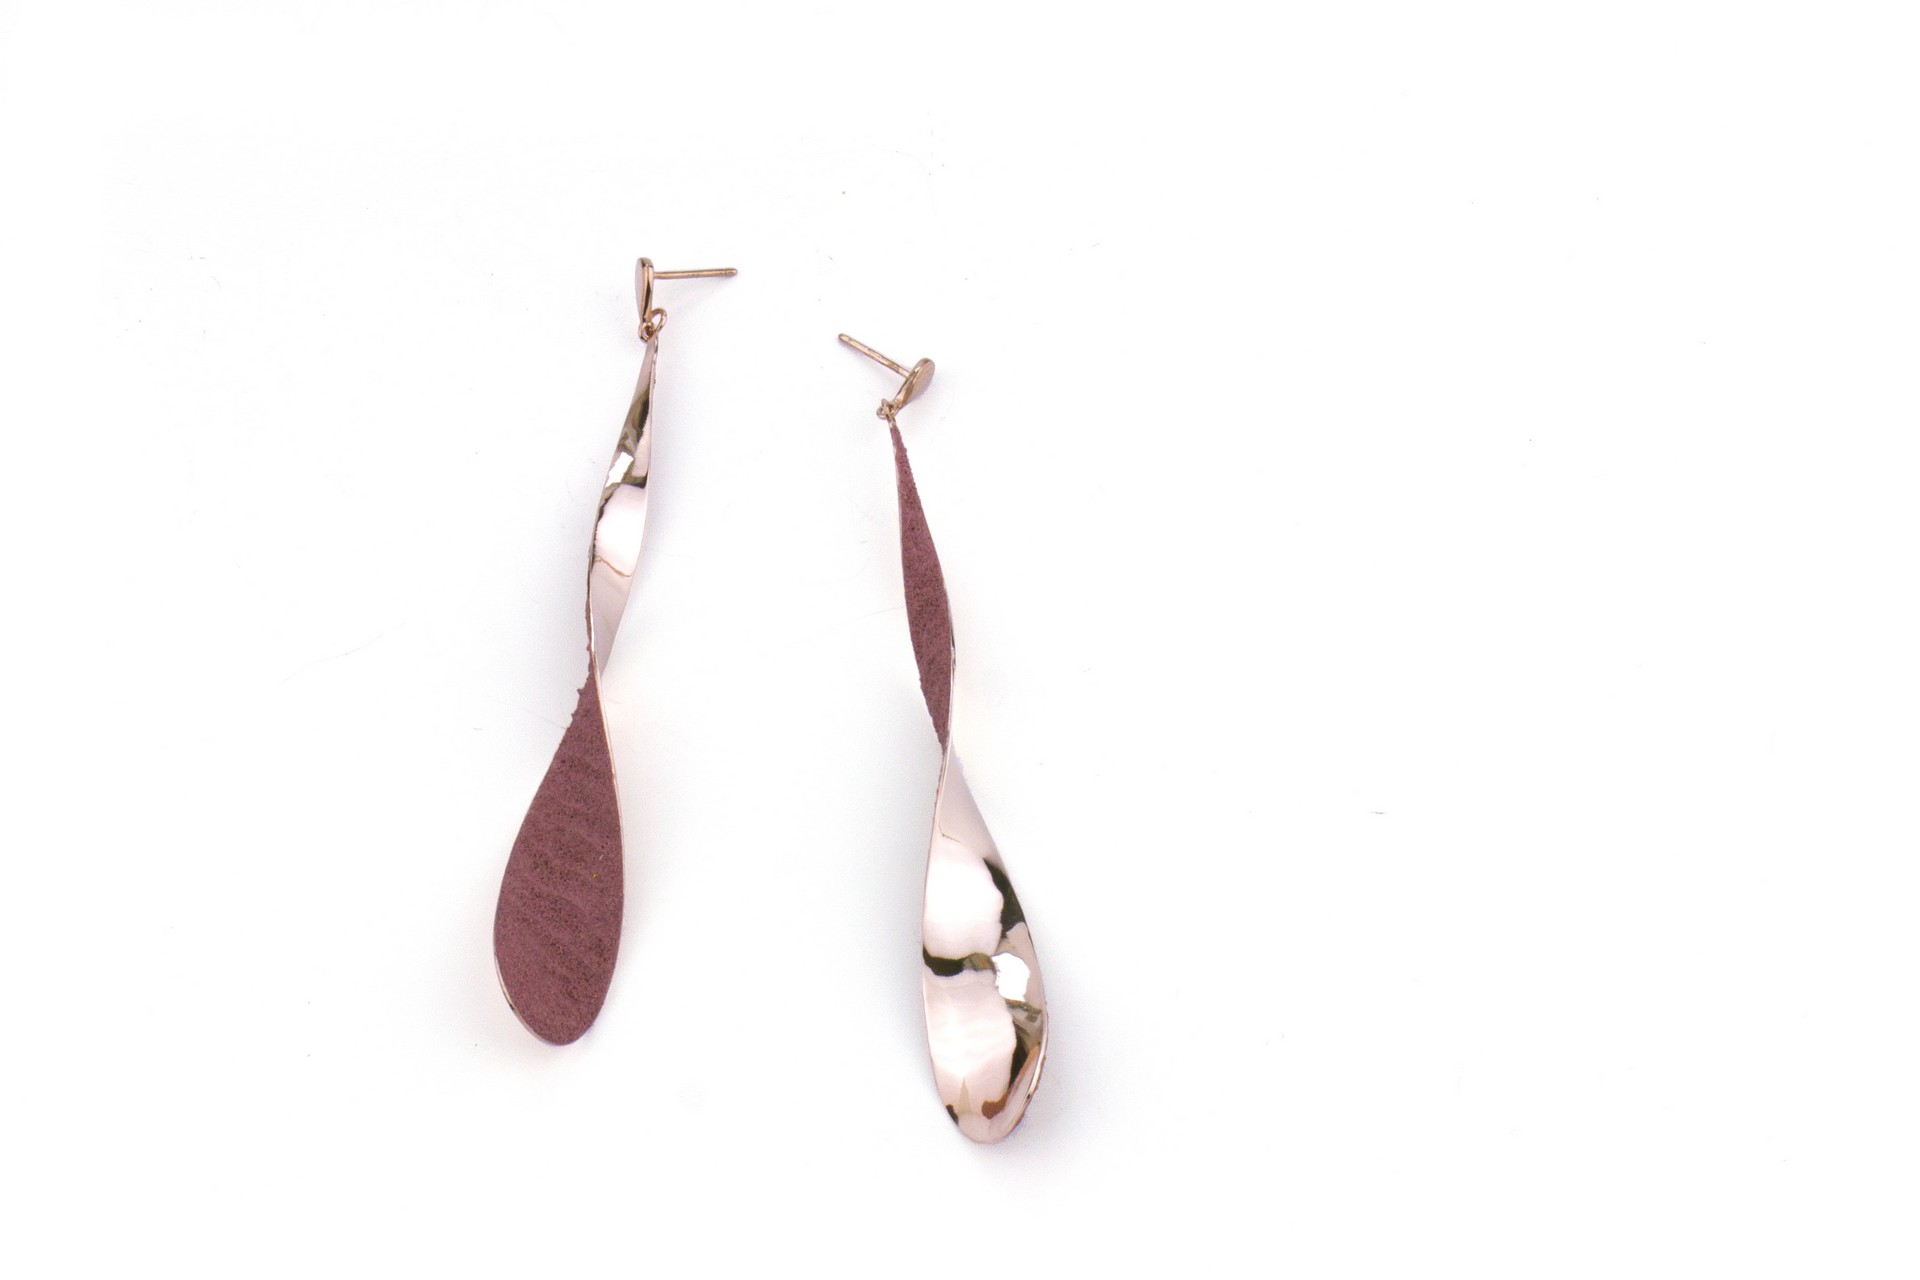 TINKLE earrings - rose. Materials: silver, special coating, structure medium.